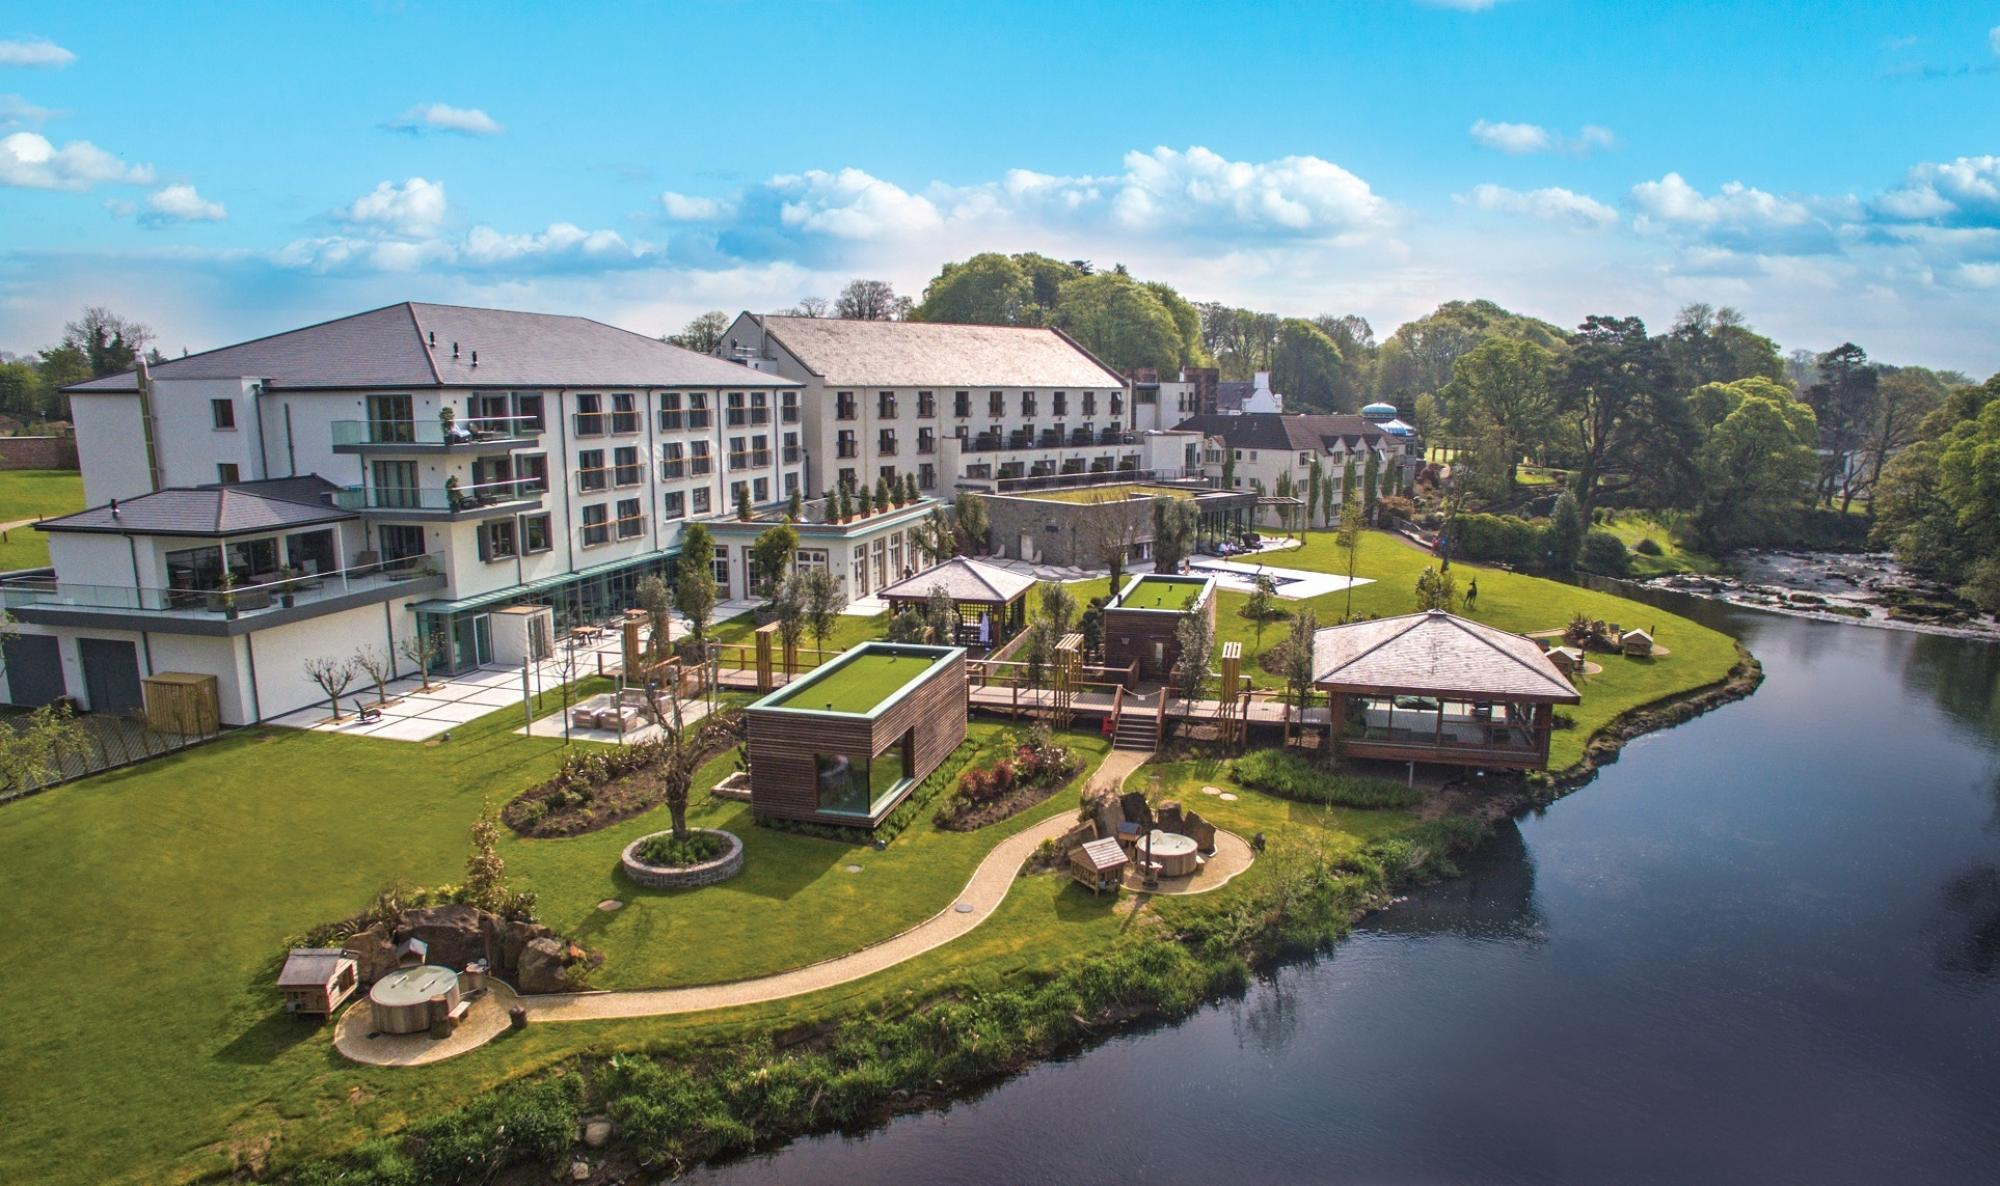 The Galgorm Resort  Spa's lovely hotel situated in brilliant Northern Ireland.